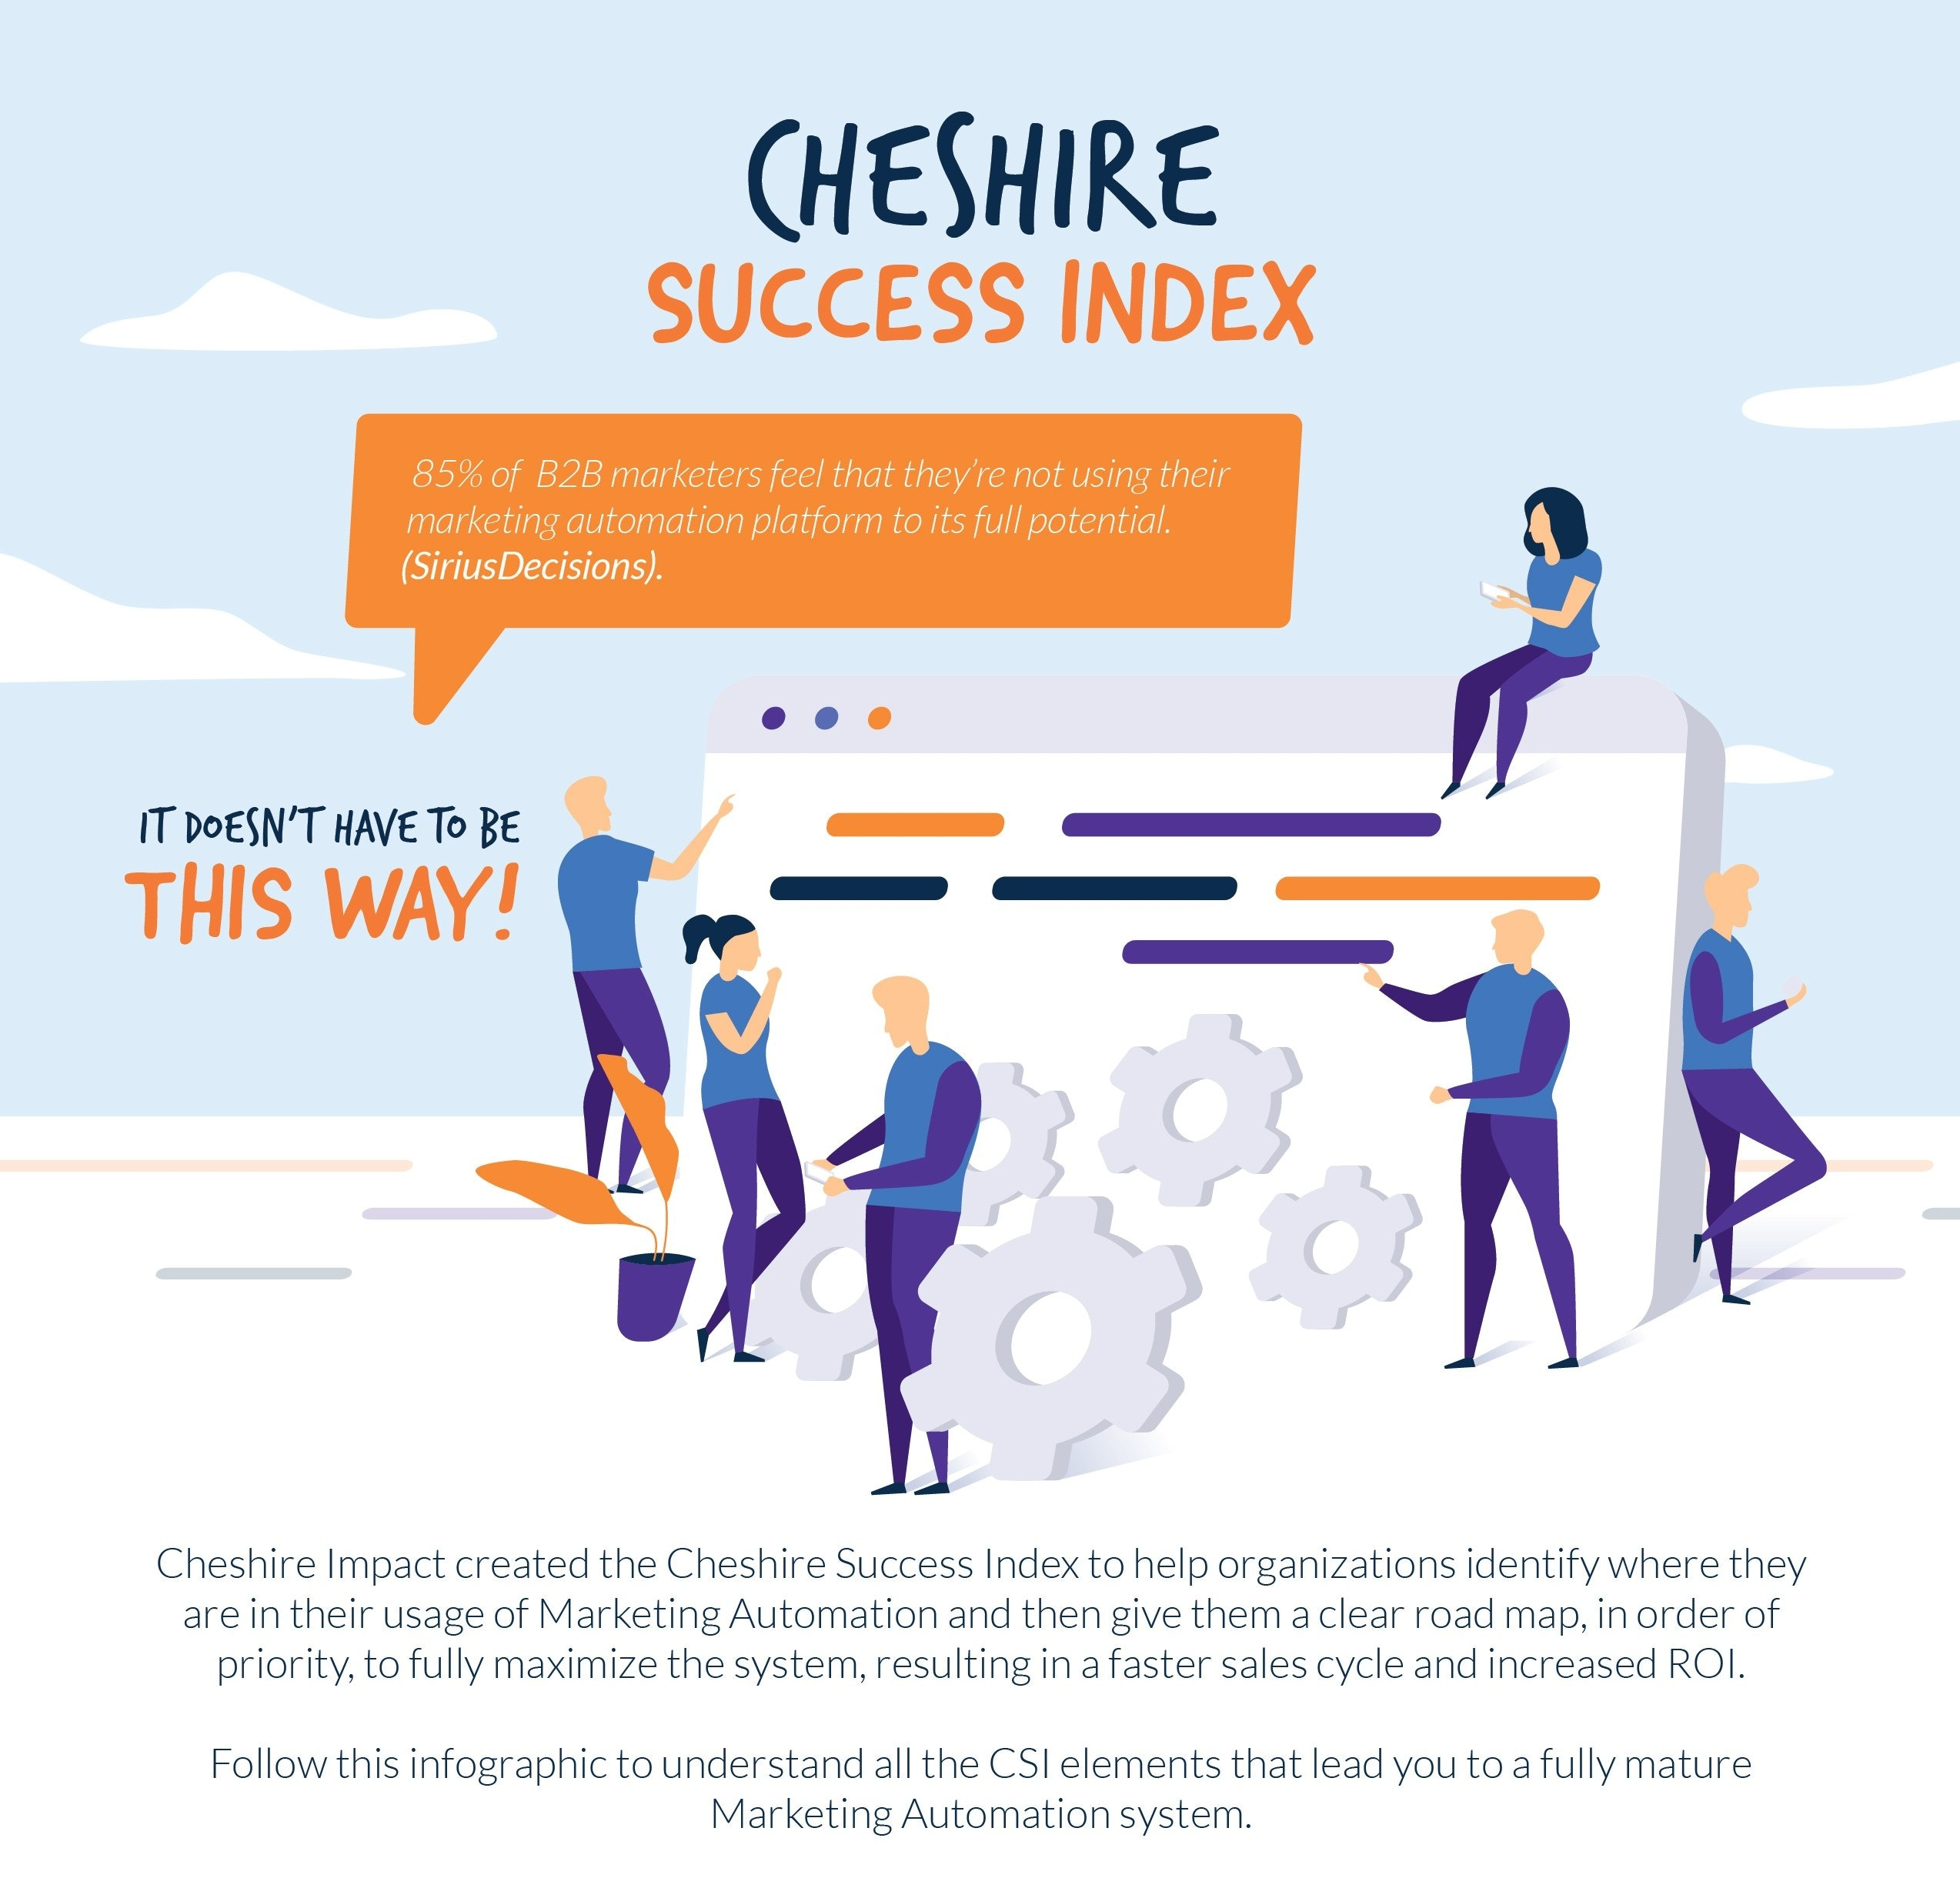 Cheshire Success Index illustration